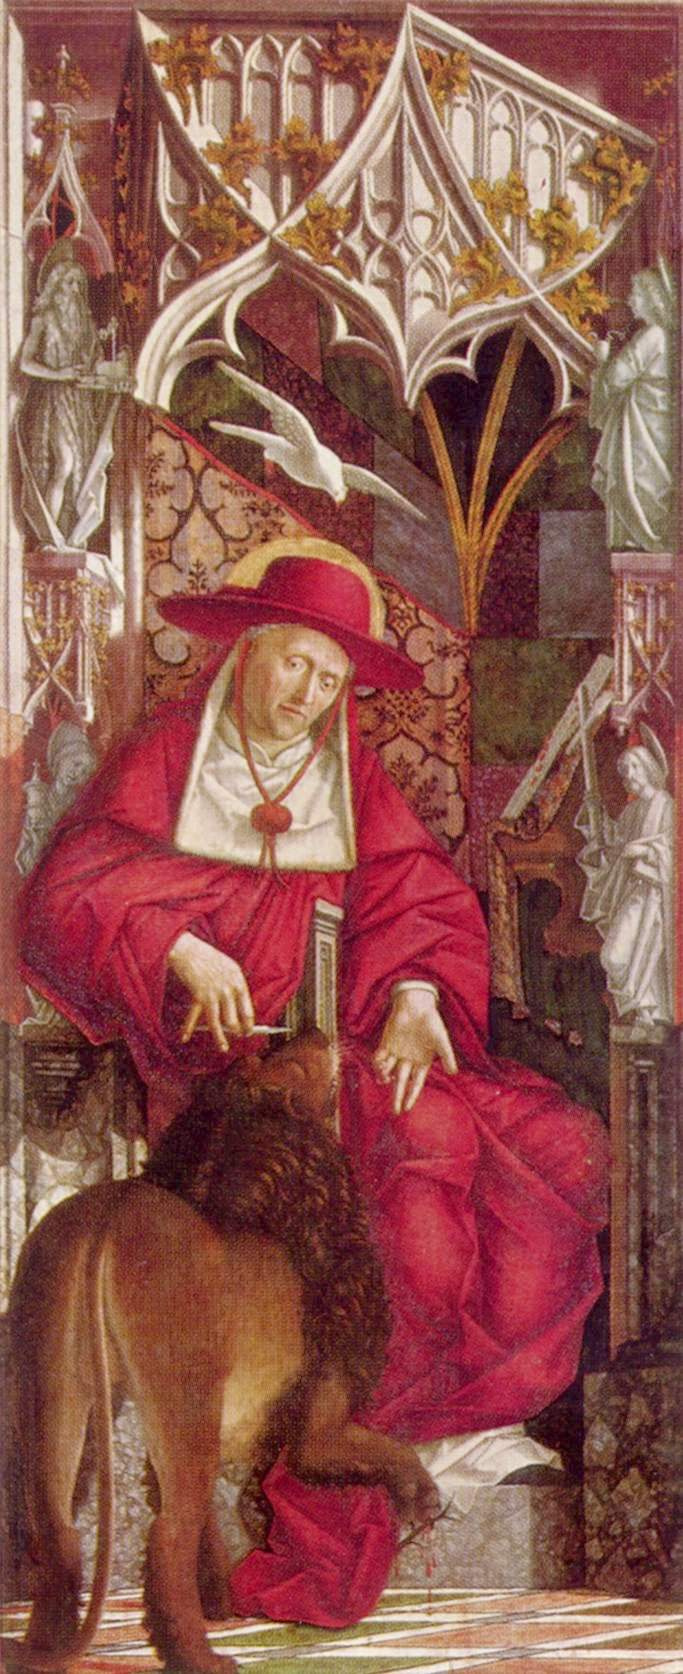 Michael Paher. Altarpiece of the Church fathers, the inner side of the left leaf. St. Jerome